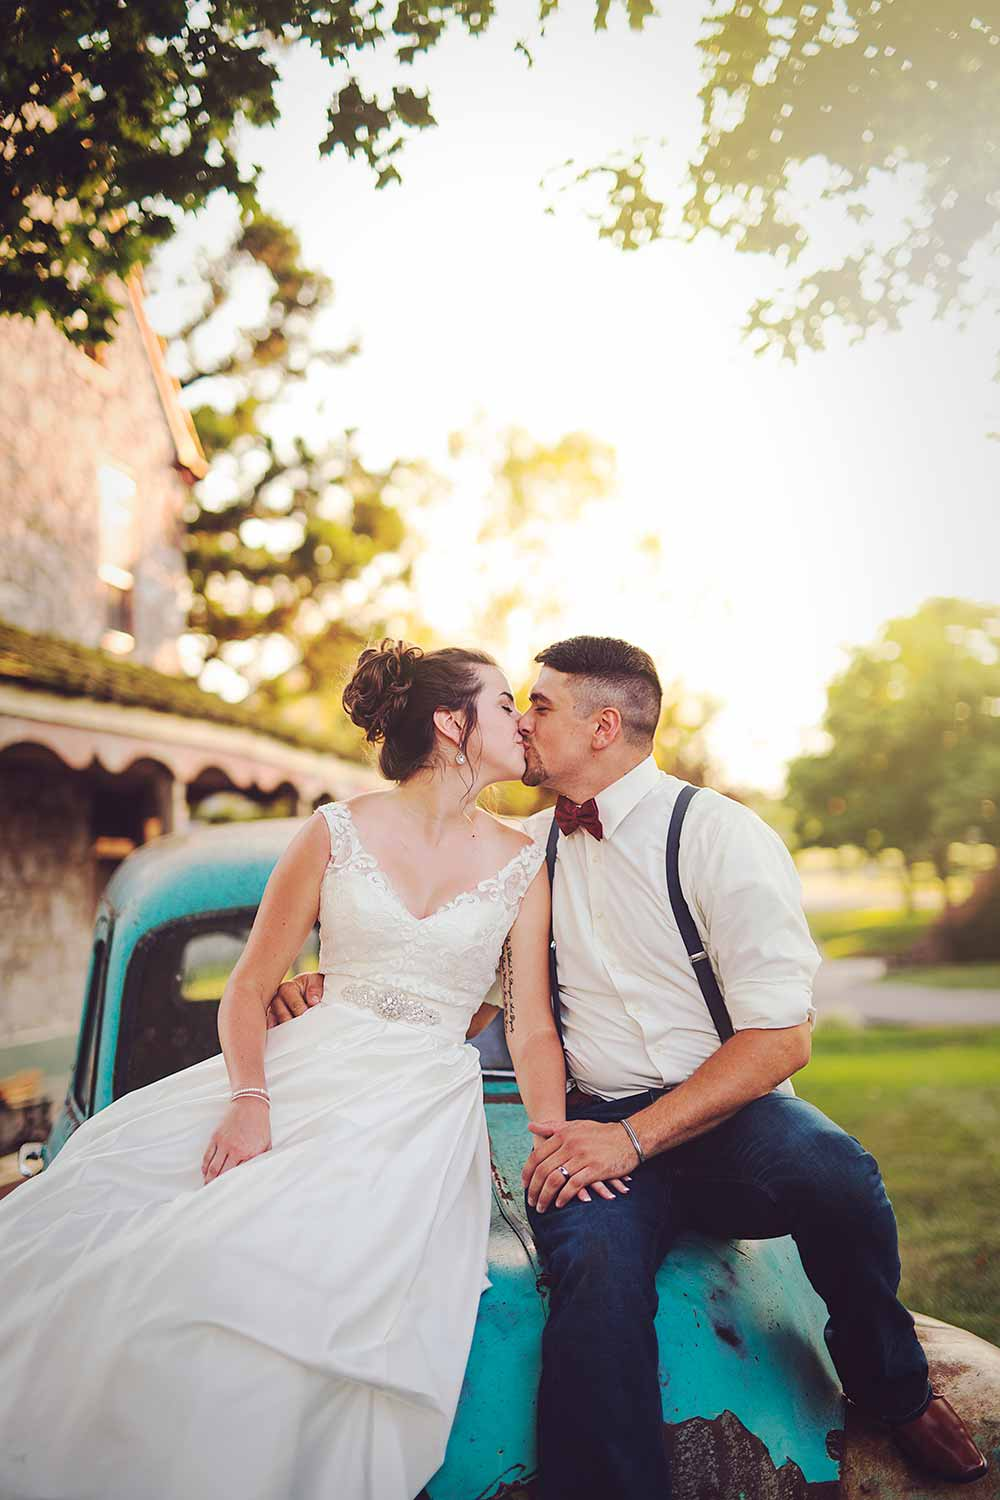 Antique car wedding photo